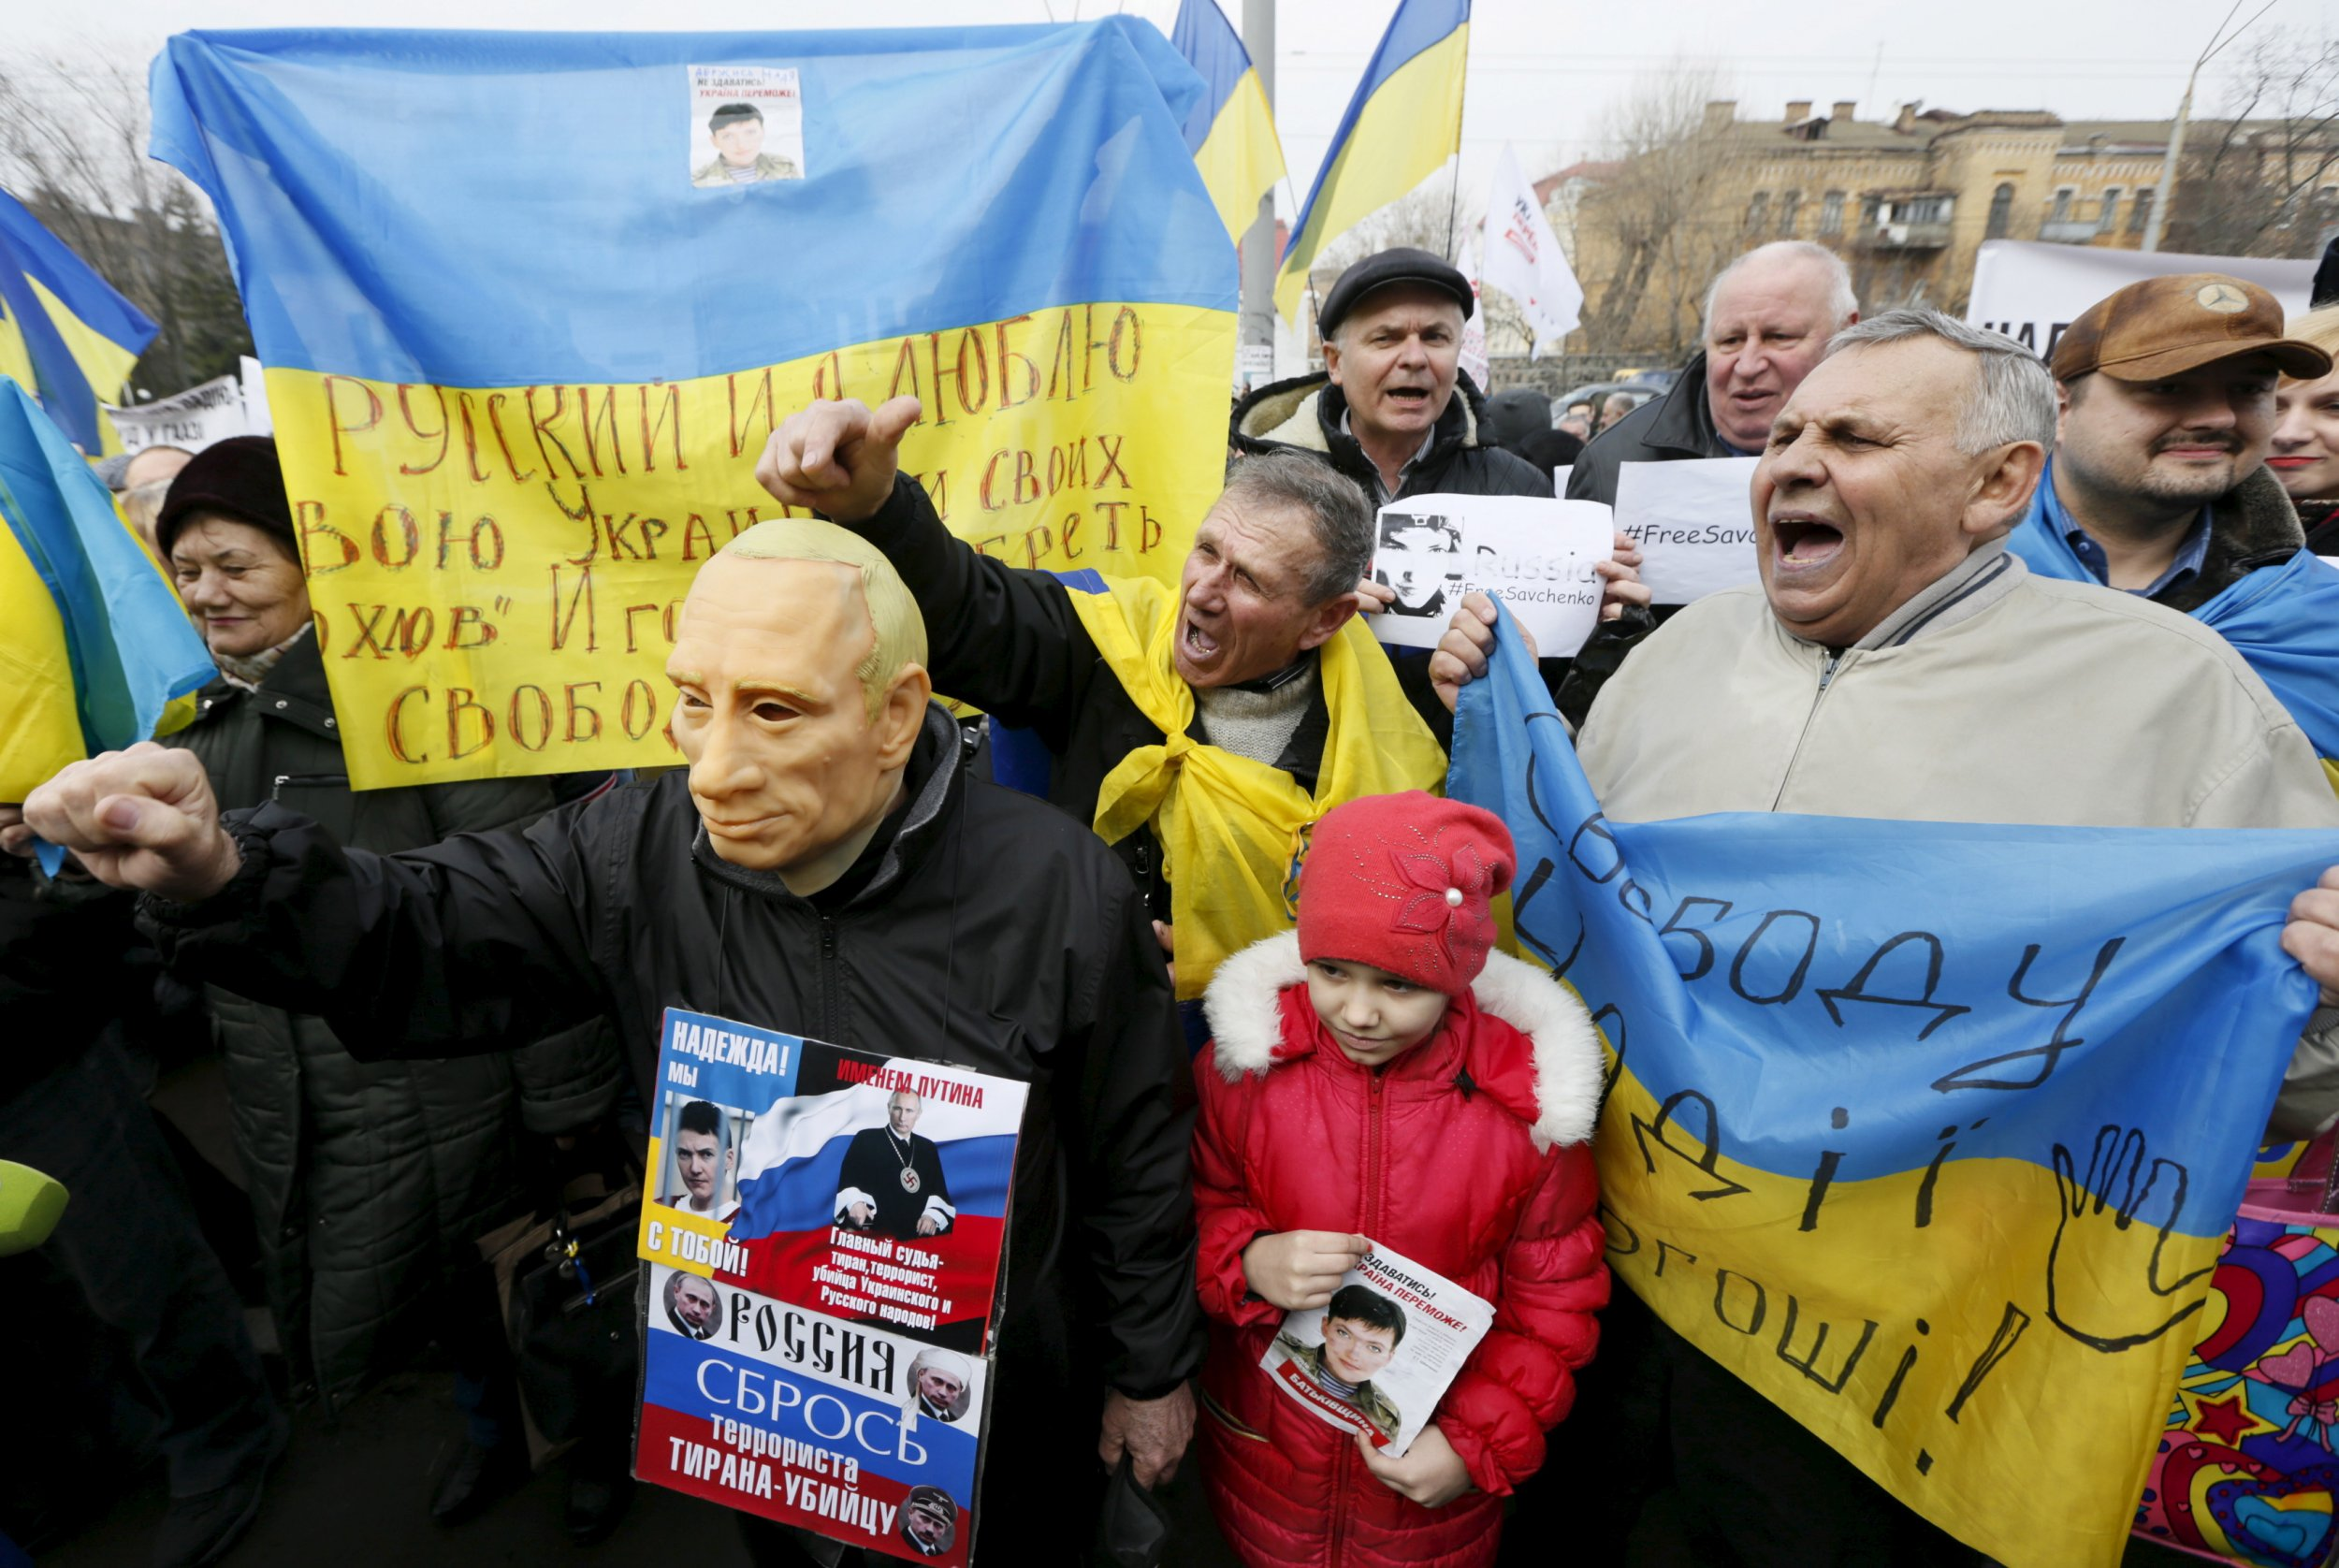 Savchenko protesters outside the Russian embassy